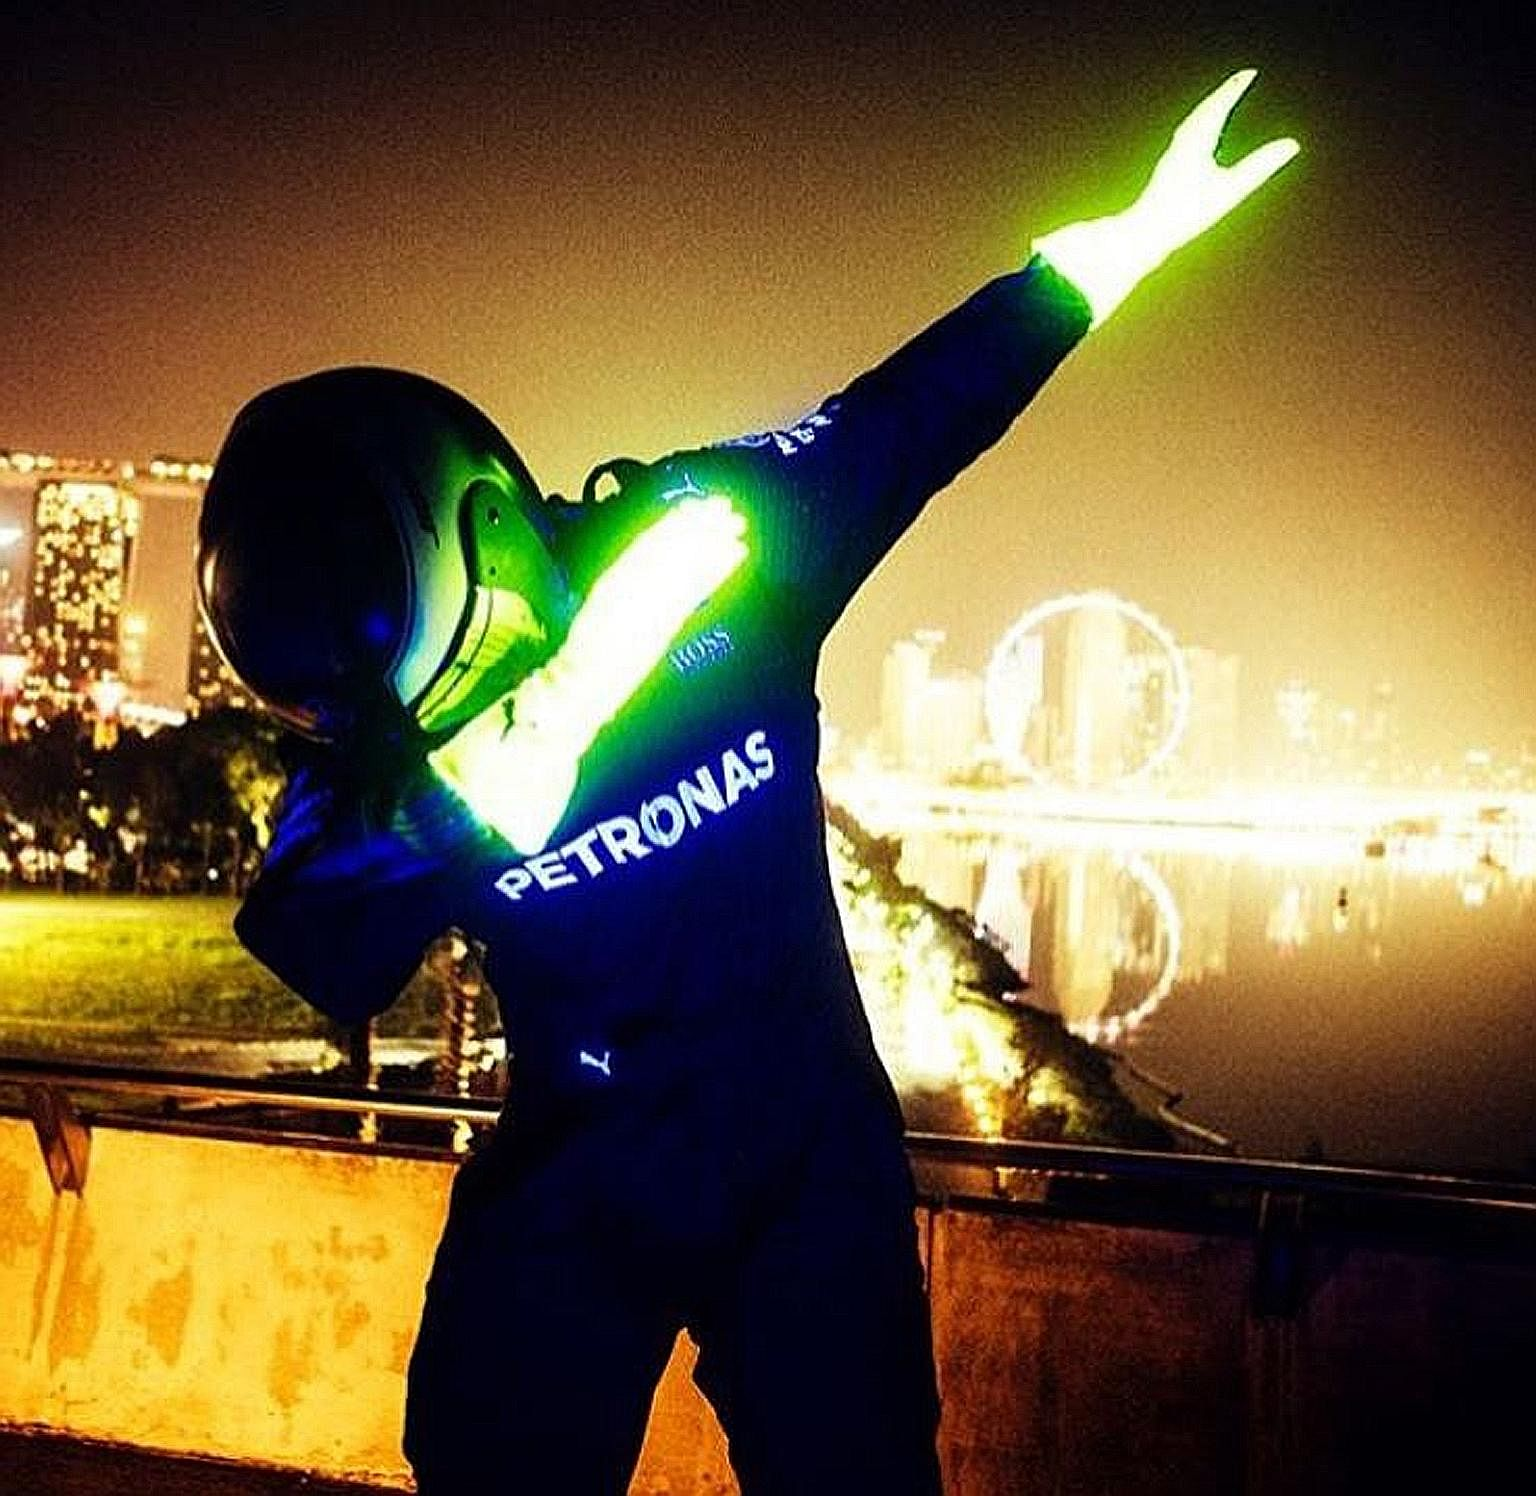 Cool! Stunning! Spectacular! Take a bow, we can only describe this dab in glowing terms.